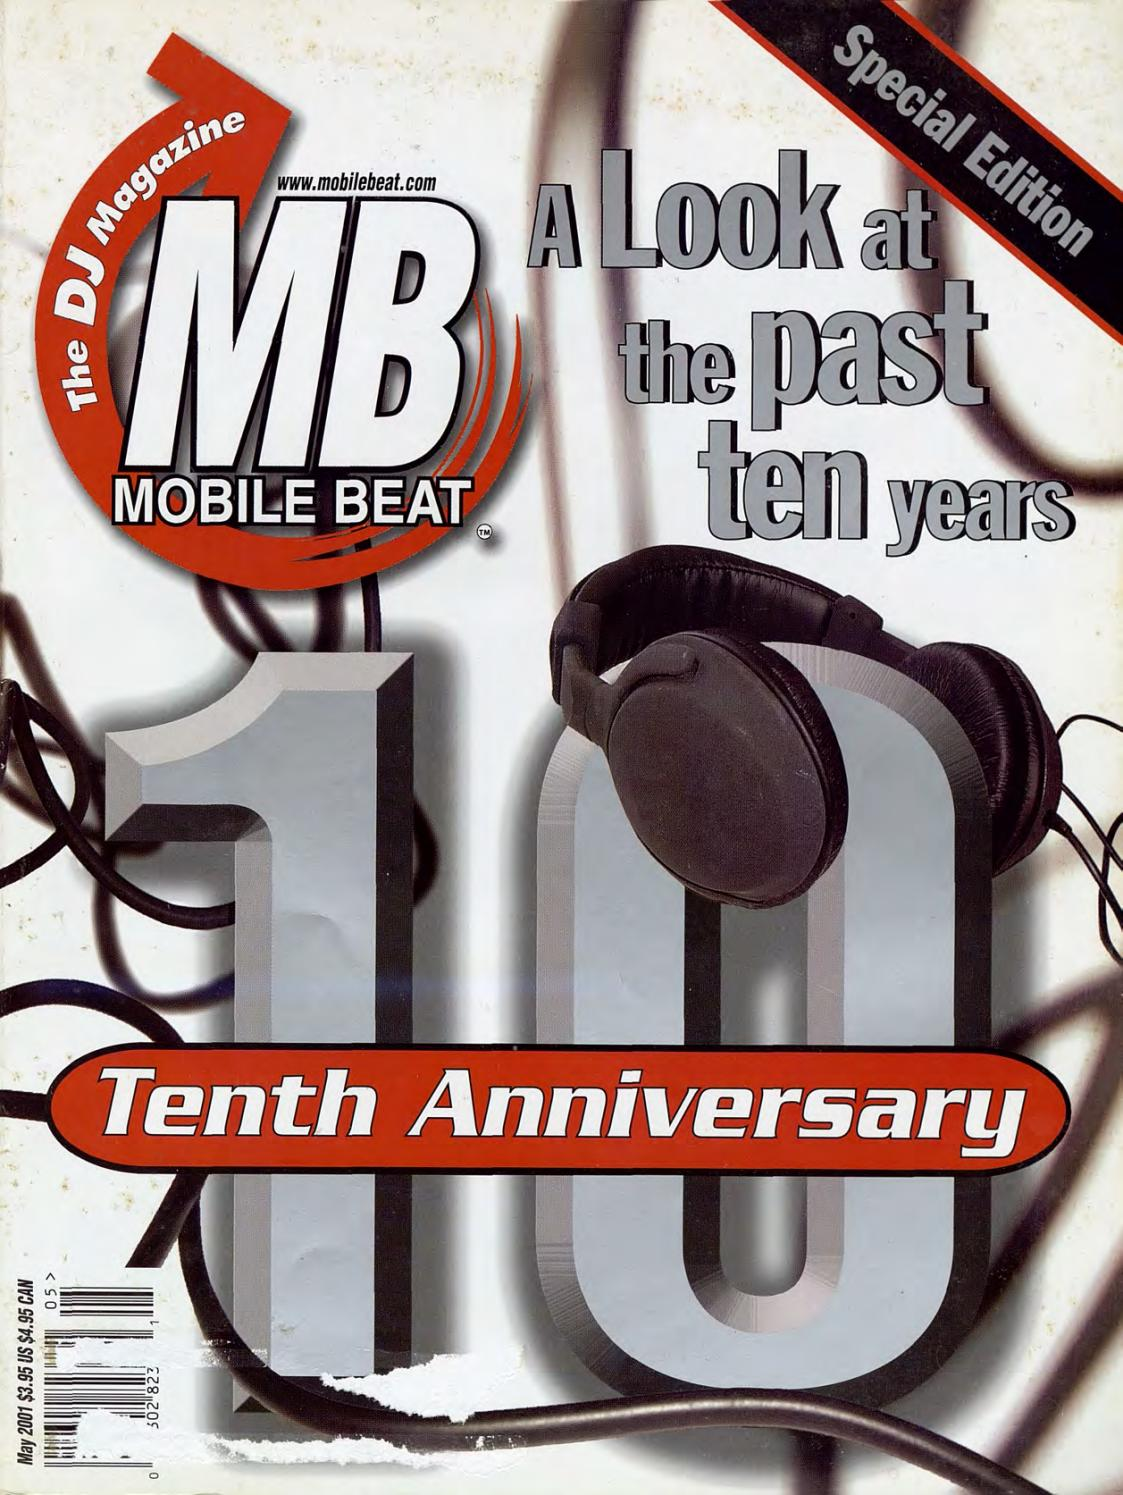 Issue 066 May 2001 A Look At The Past Ten Years Tenth Anniversary By Mobile Beat Magazine Issuu